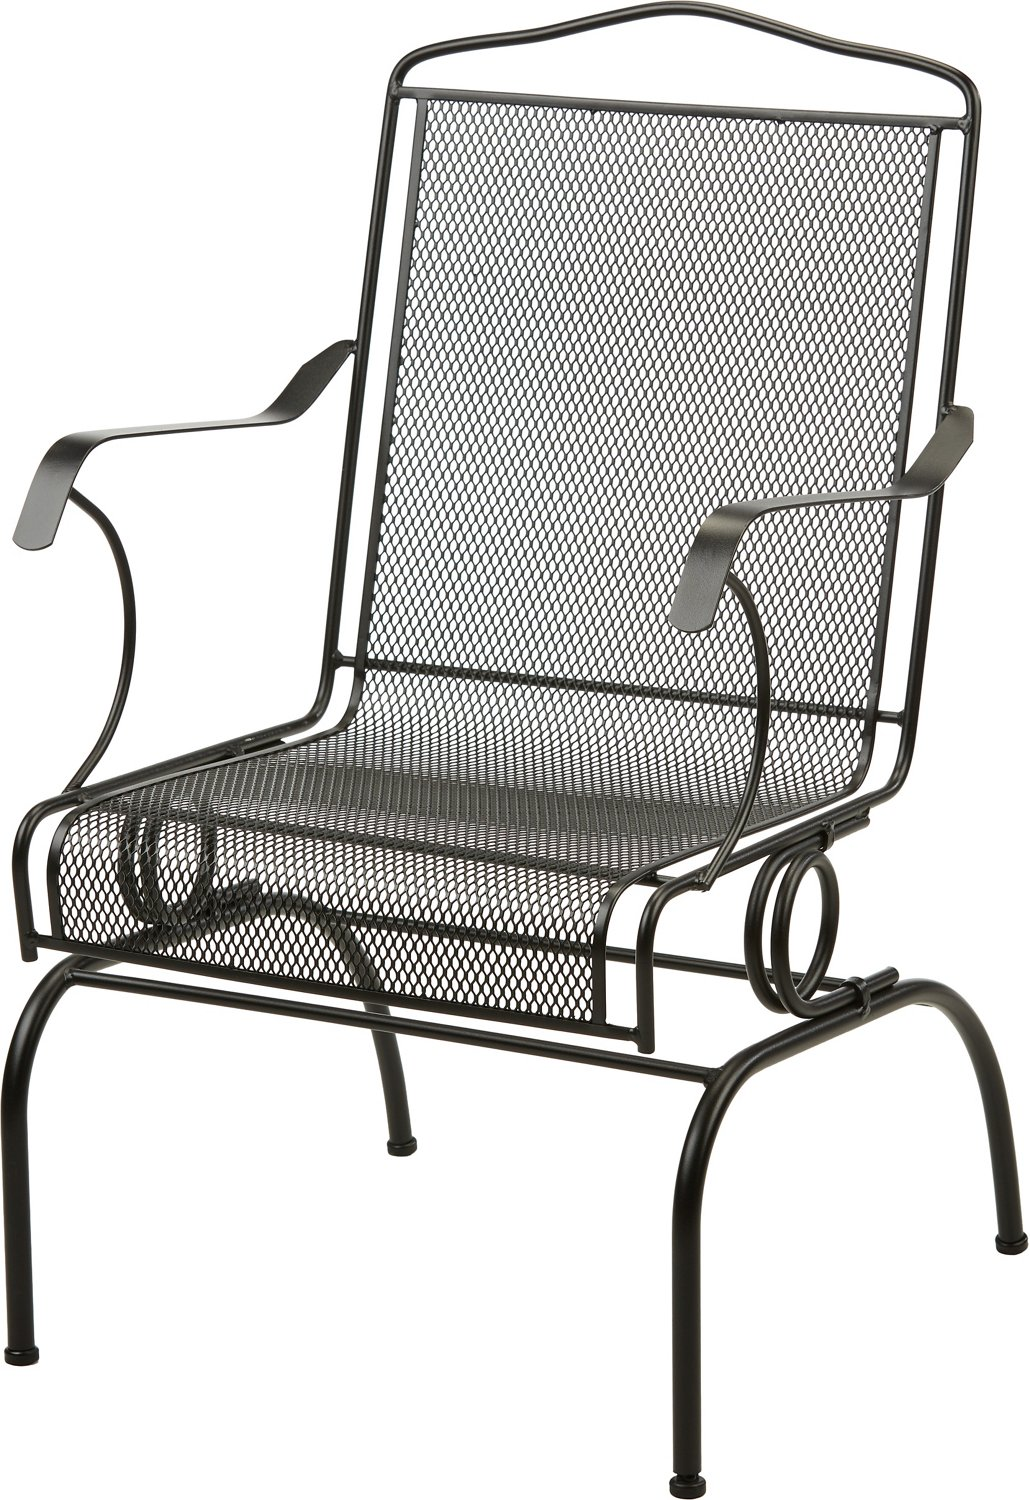 academy sports patio chairs med lift chair furniture stack action